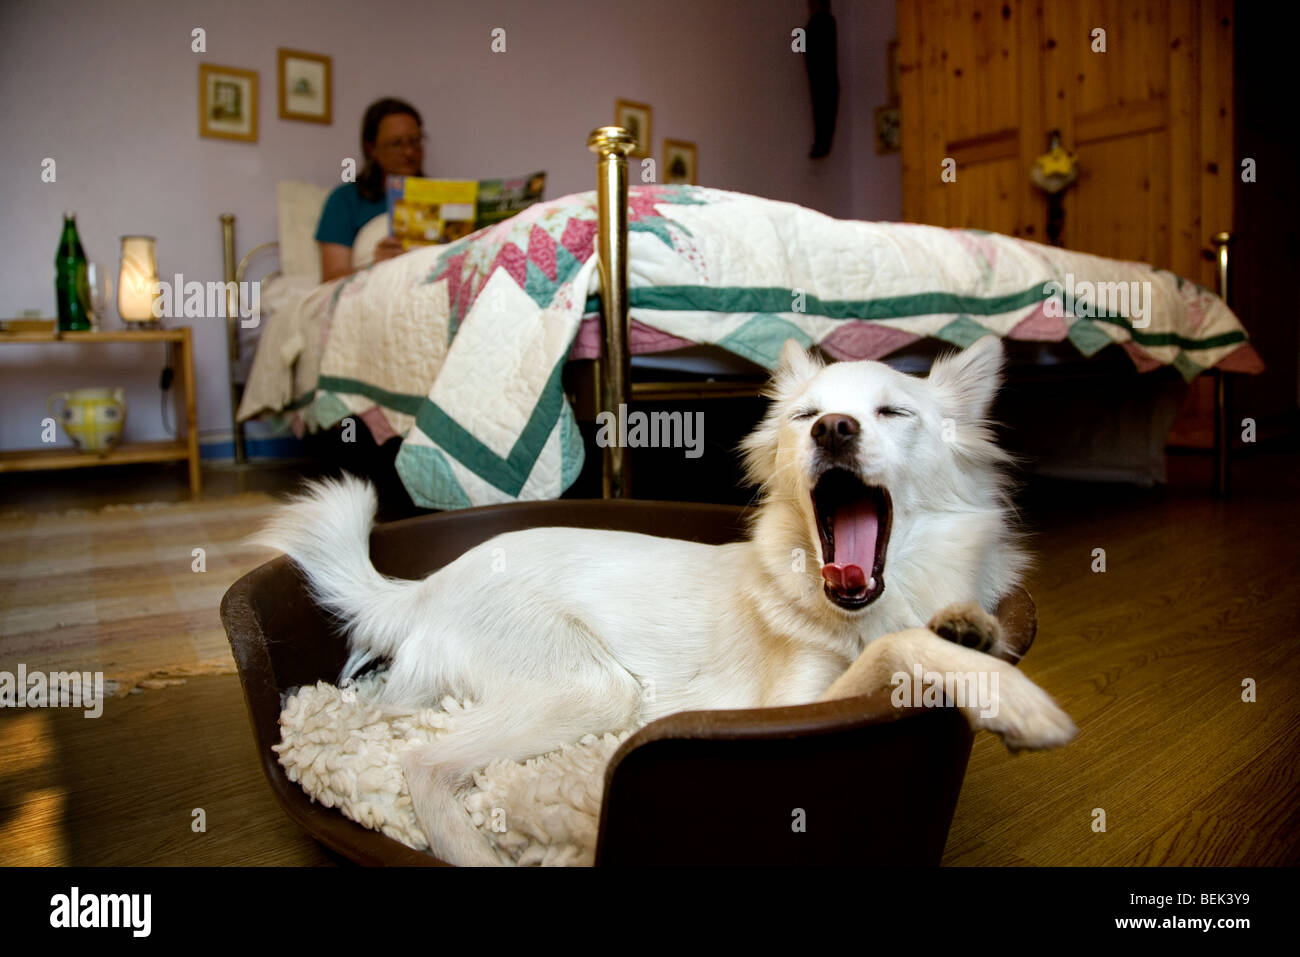 Woman reading in bed and sleepy white mongrel dog yawning before going to sleep in basket in bedroom chamber of - Stock Image